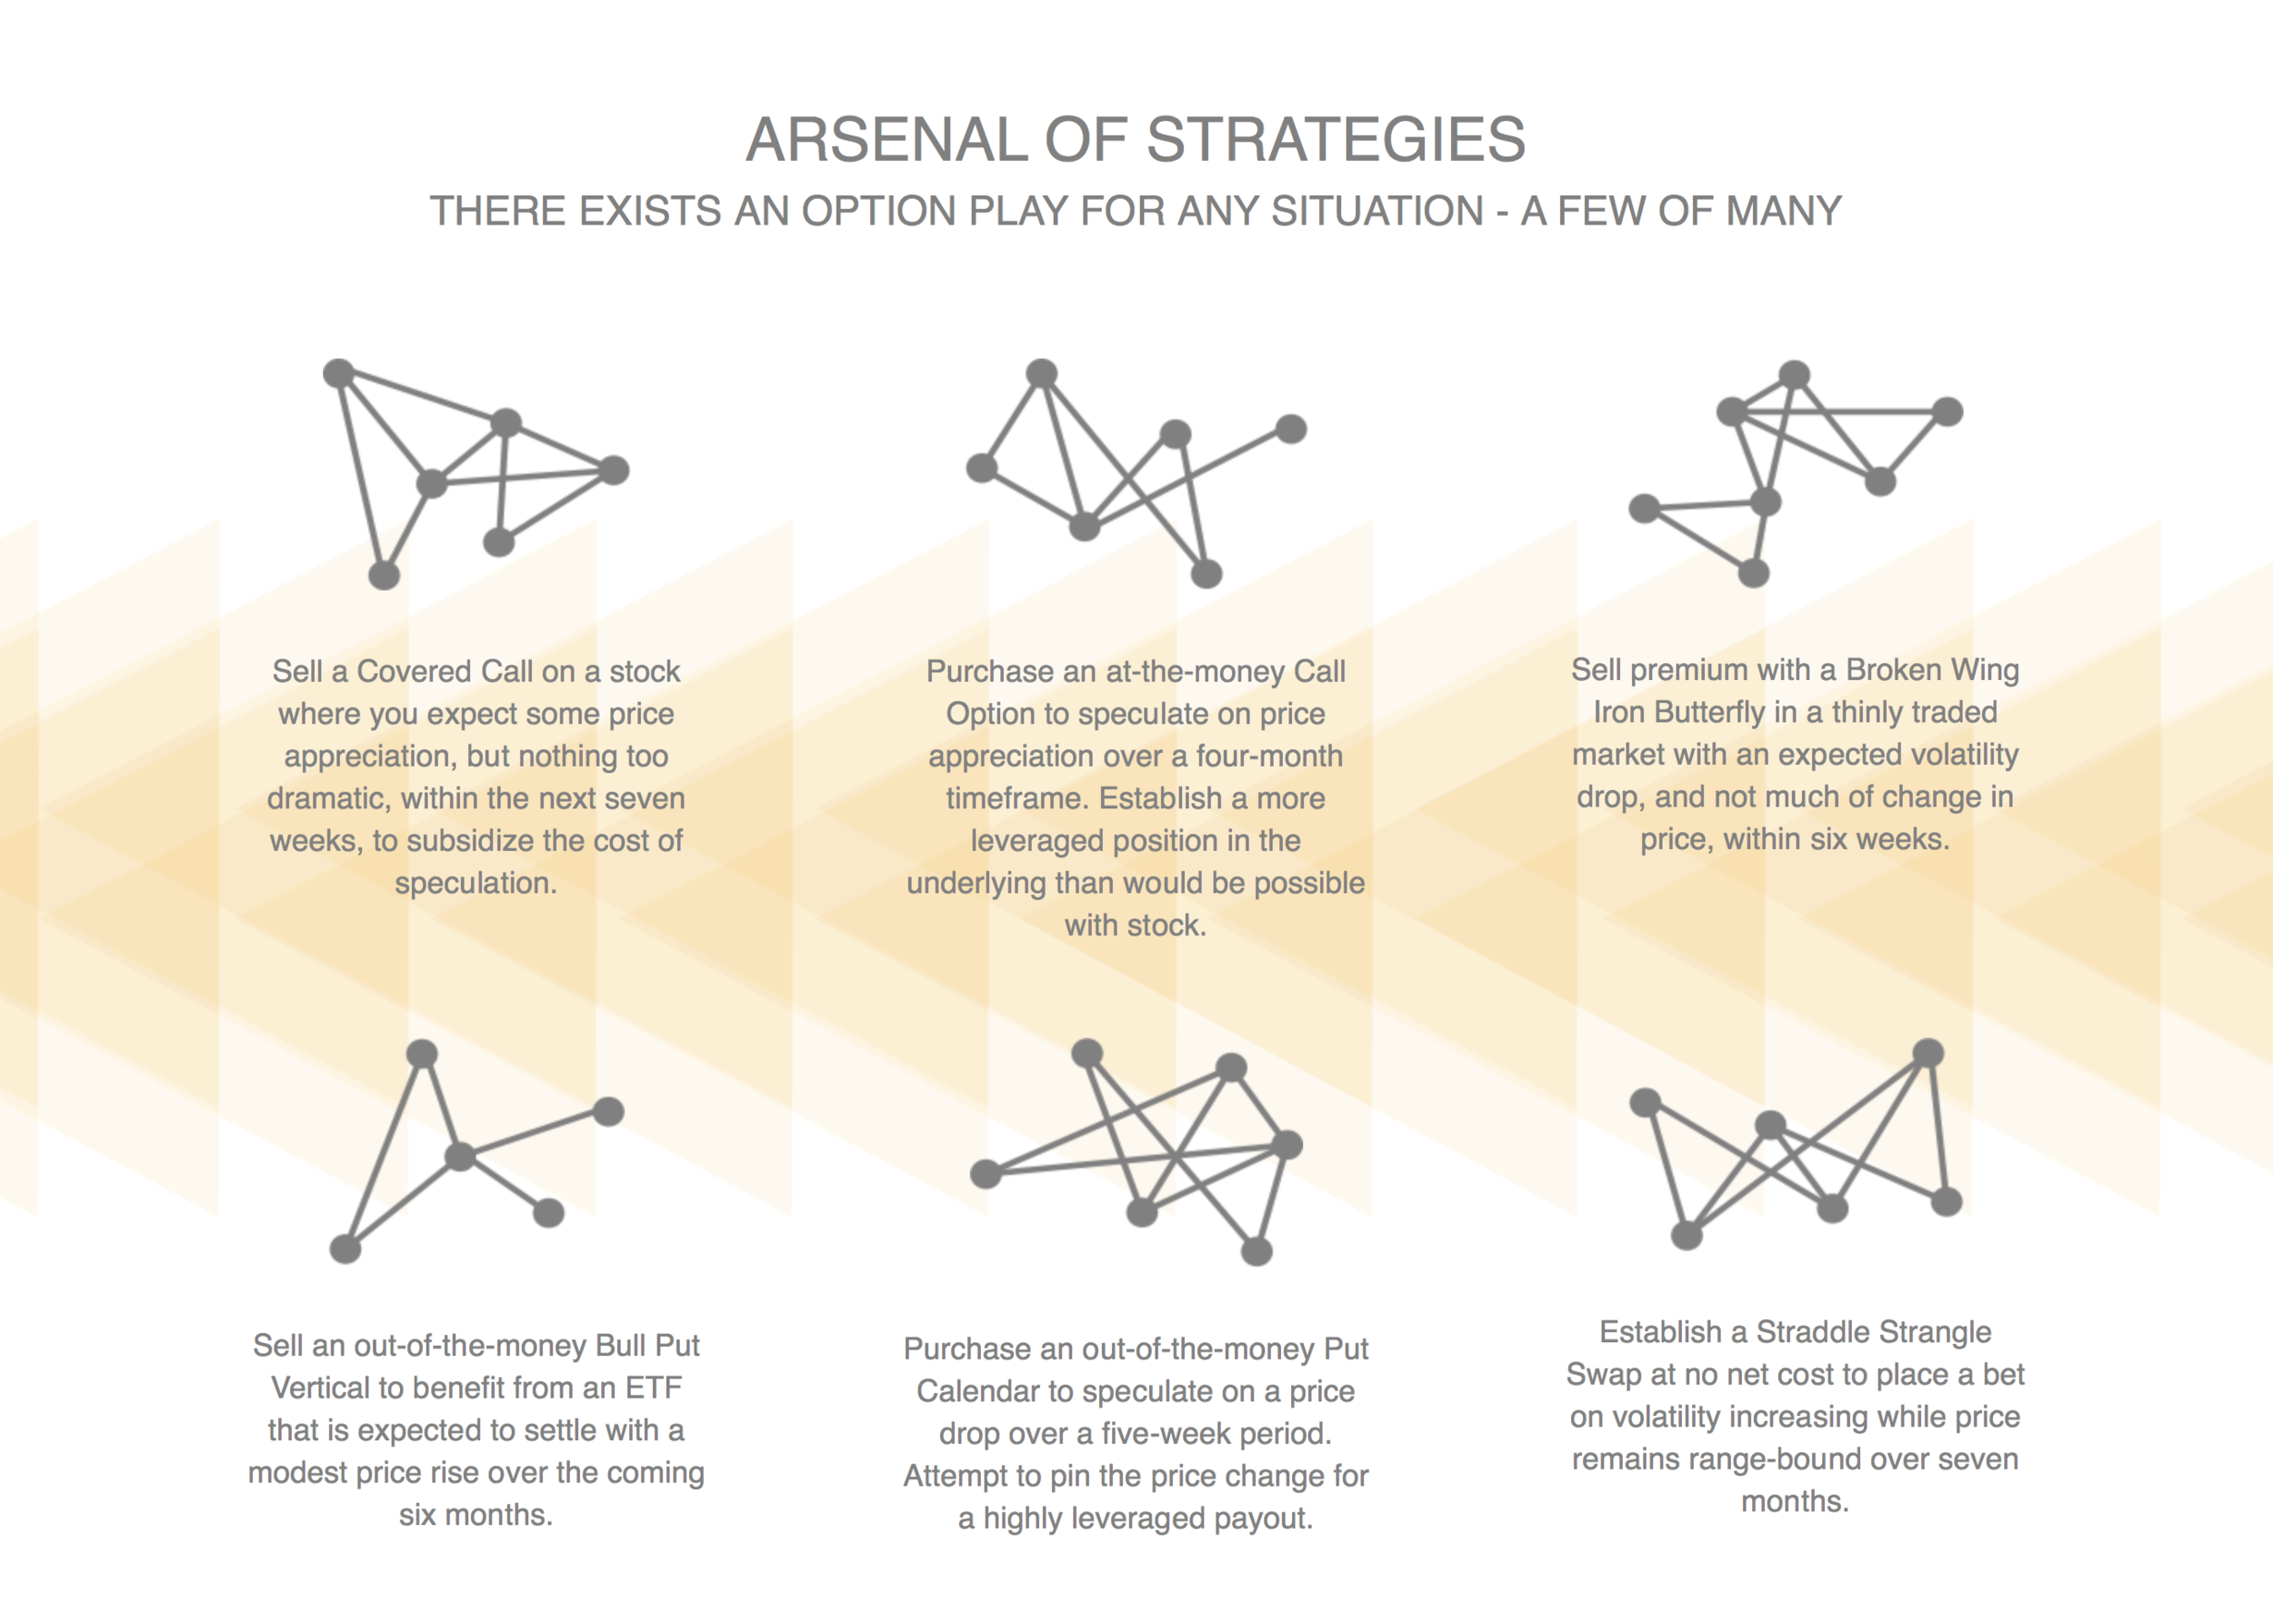 So Many Strategies - A sampling of complex option strategies with stylized icons and some verbiage about their uses. This was meant to reinforce the idea that each of the roughly one hundred strategies had a unique role and distinct characteristics. Most readers were familiar with only some of the possible strategies; an enlarged toolbox of strategies was one benefit.